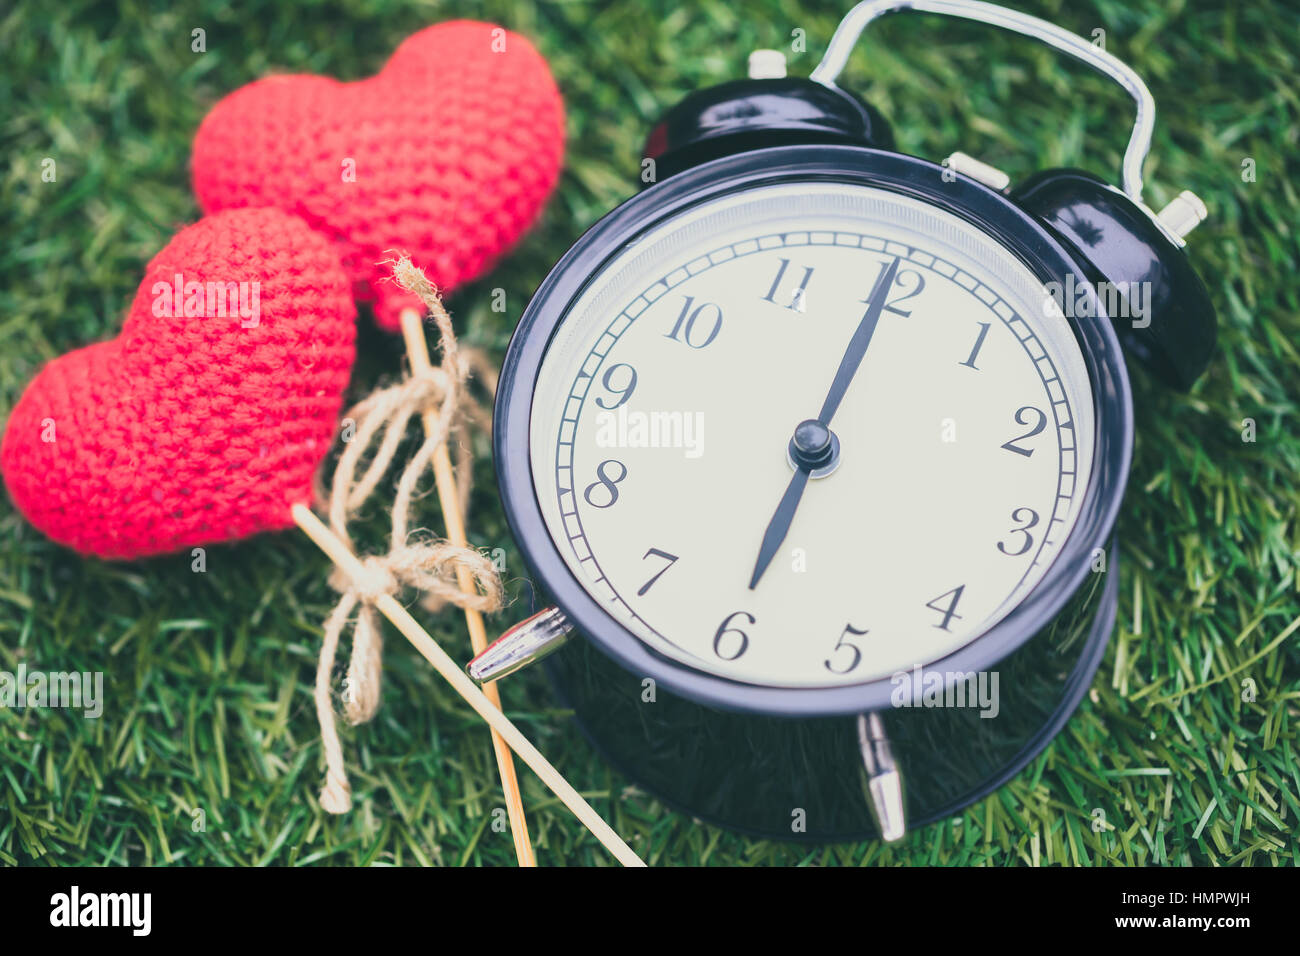 retro clock on grass time at 6 o'clock with red heart yarn